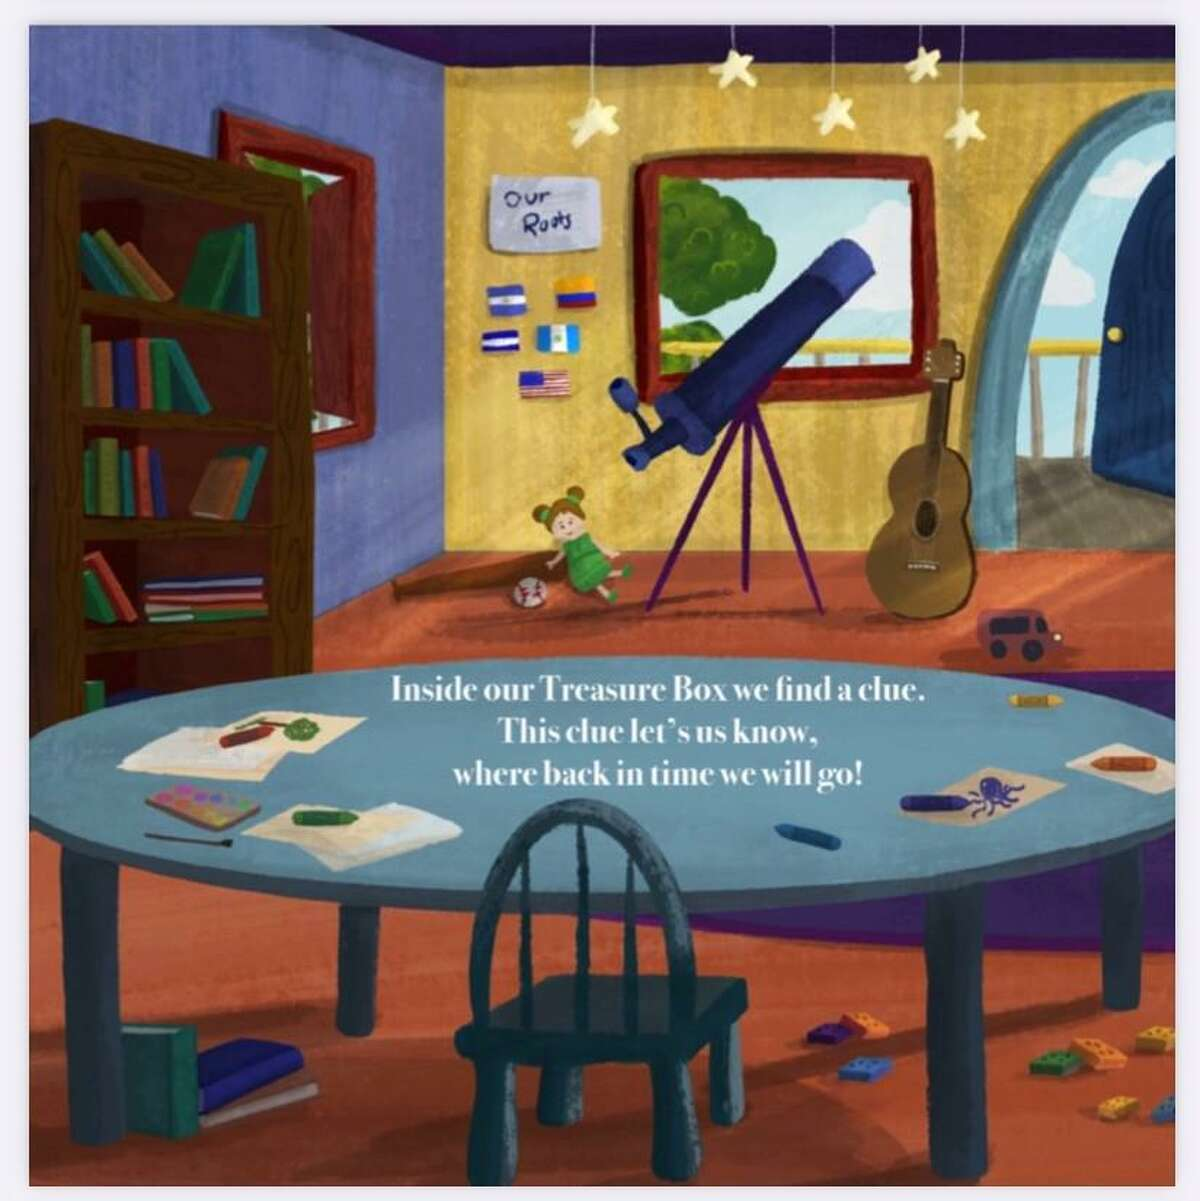 Several things in one of the rooms in Carmen Ortega and Landon Medina's book represents things special to Medina. Also, the room features flags that represent Medina's cultural history. The book was illustrated by Rocio Ortiz.